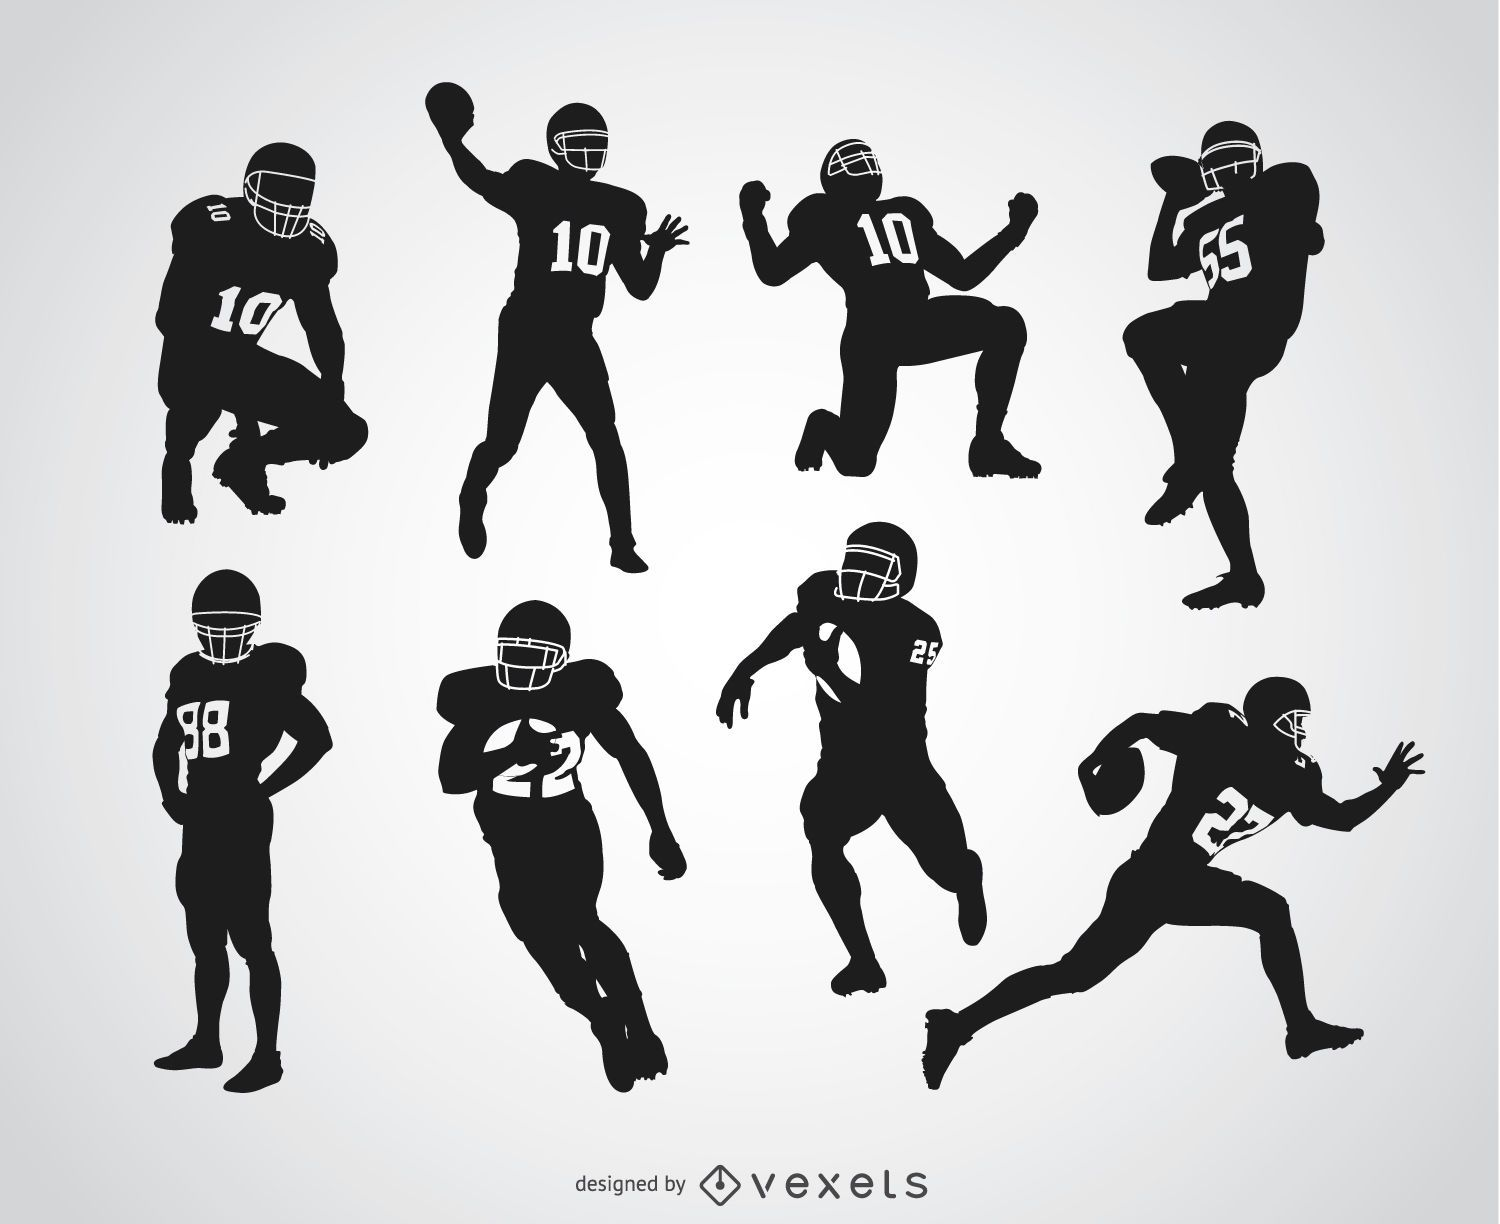 american football players silhouettes download large image 729x597px license image user